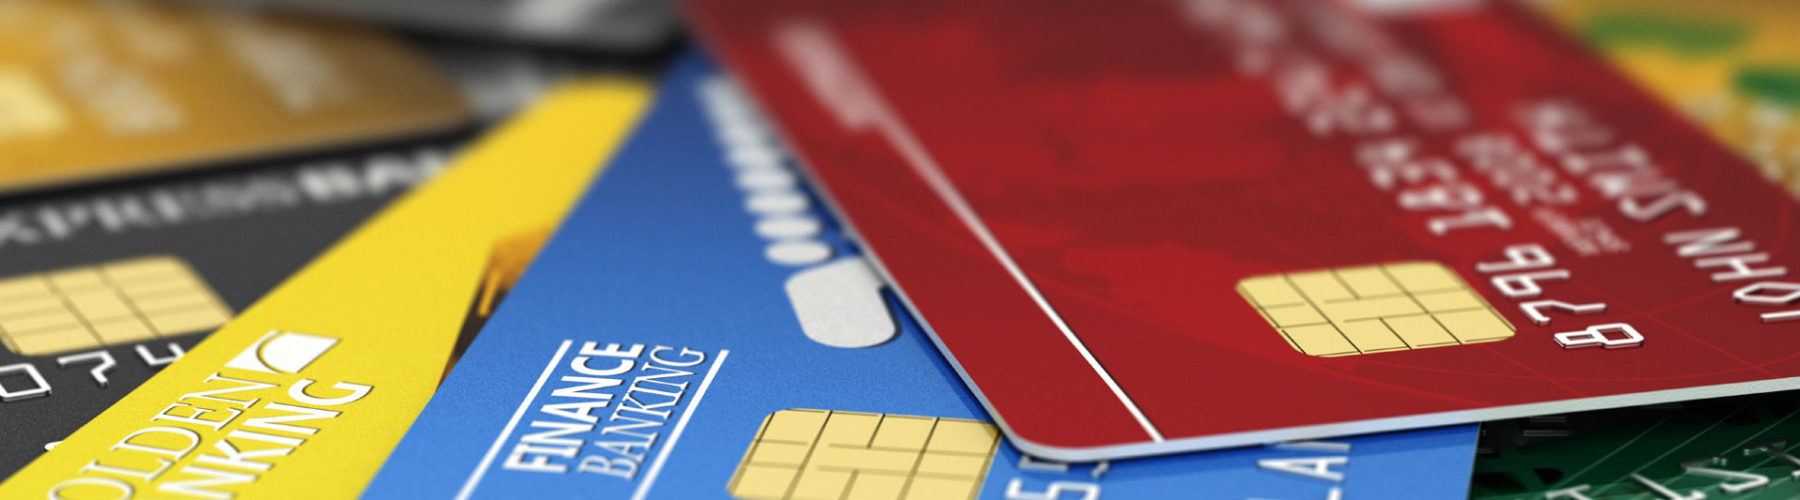 Examining the Different Types of Credit Cards